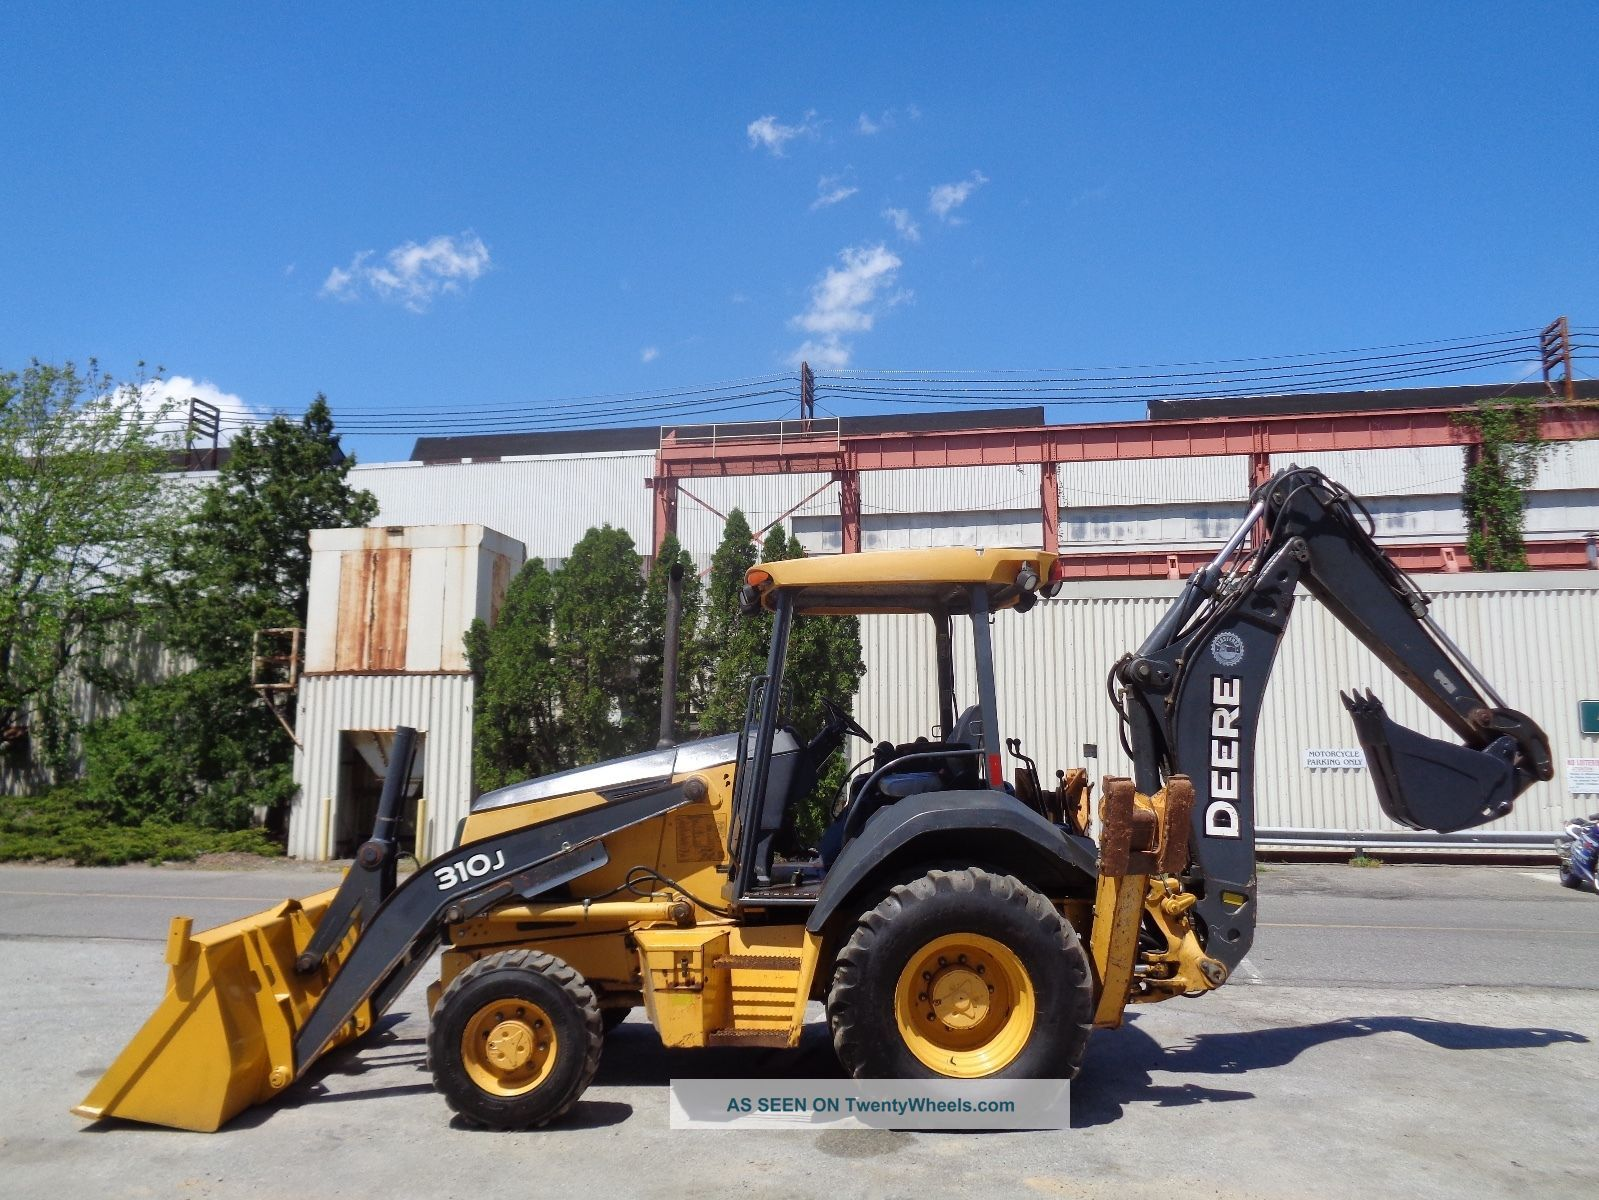 2009 John Deere 310j Loader Backhoe - Auxiliary Hydraulics - 4x4 Backhoe Loaders photo